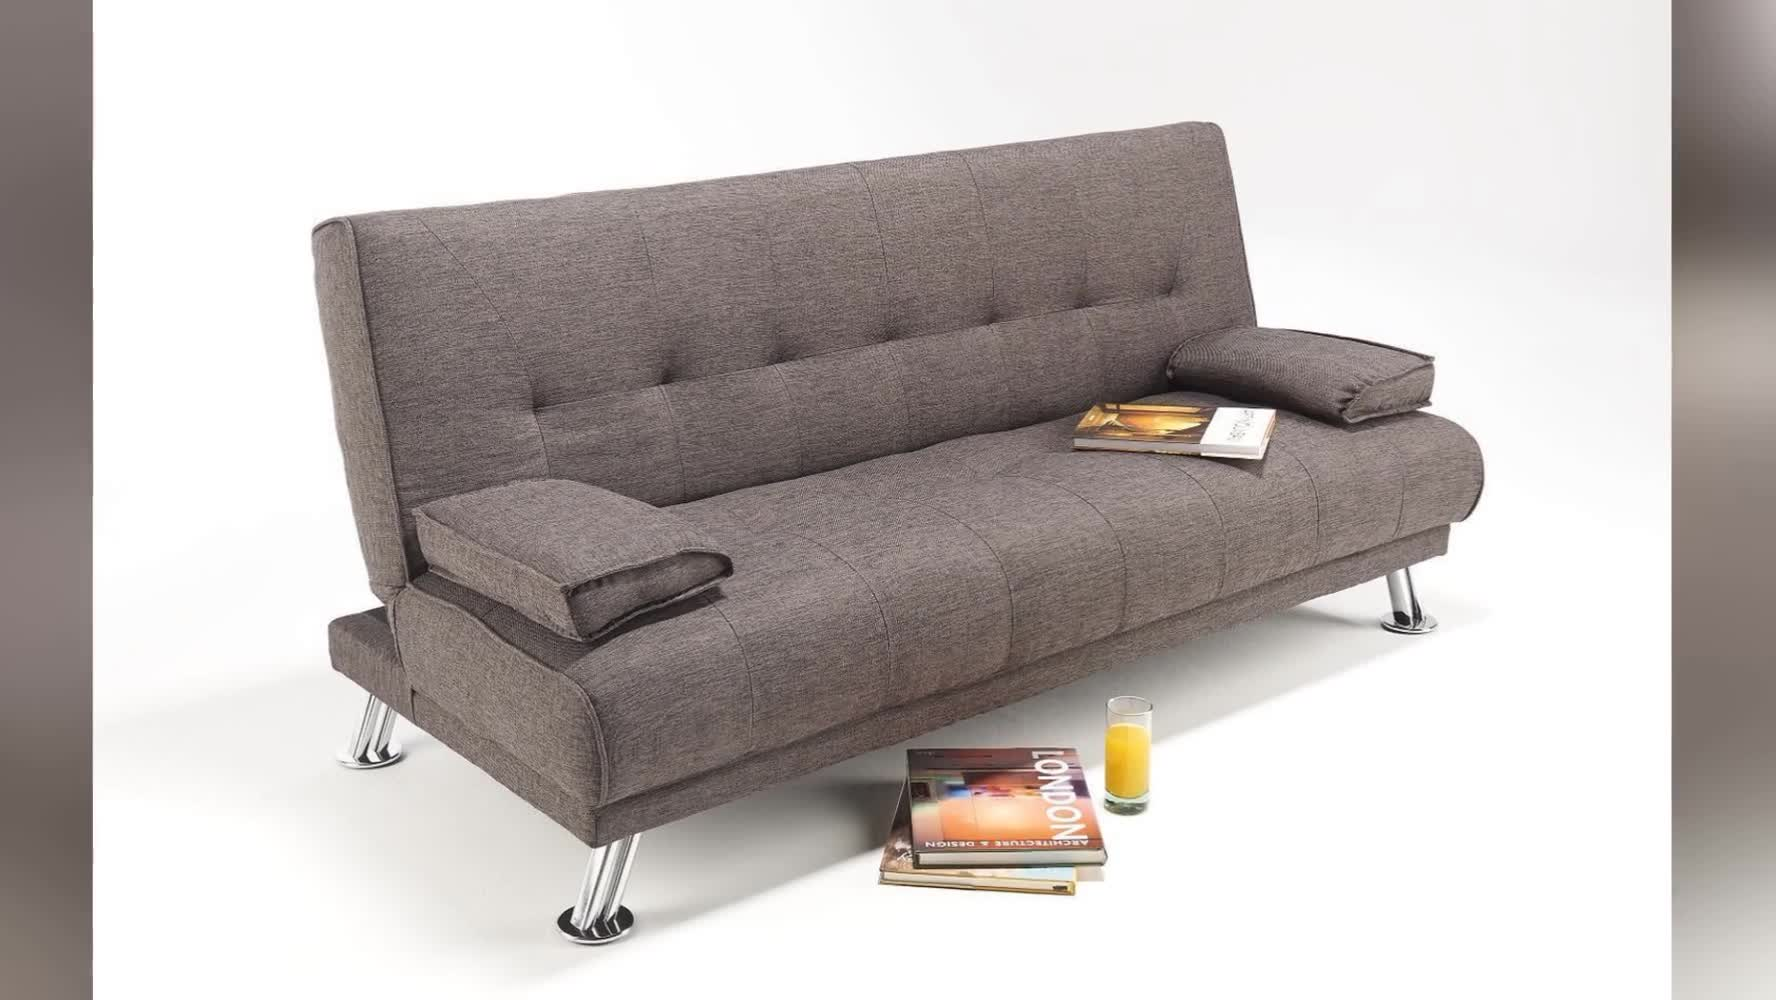 Murphy bed with sofa,corner sofa bed without storage,1.8 meter sofa bed